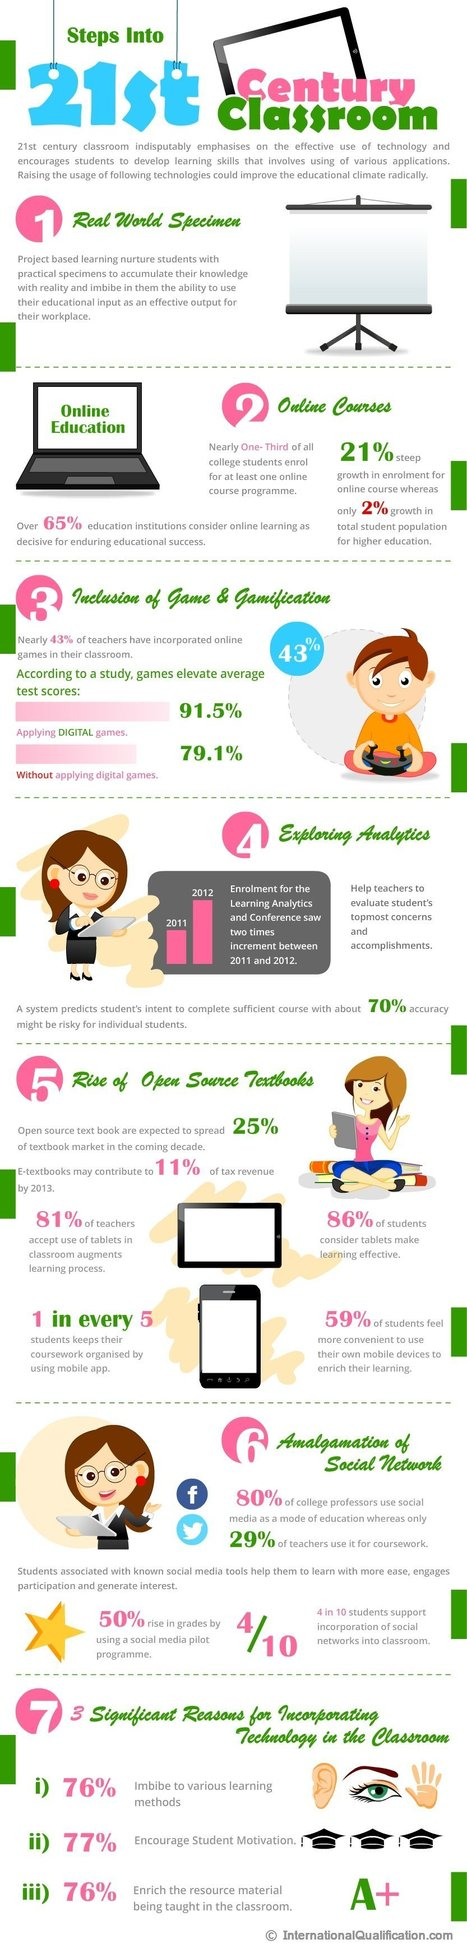 Steps into the 21st Century Classroom [Infographic] | Educational Leadership and Technology | Scoop.it